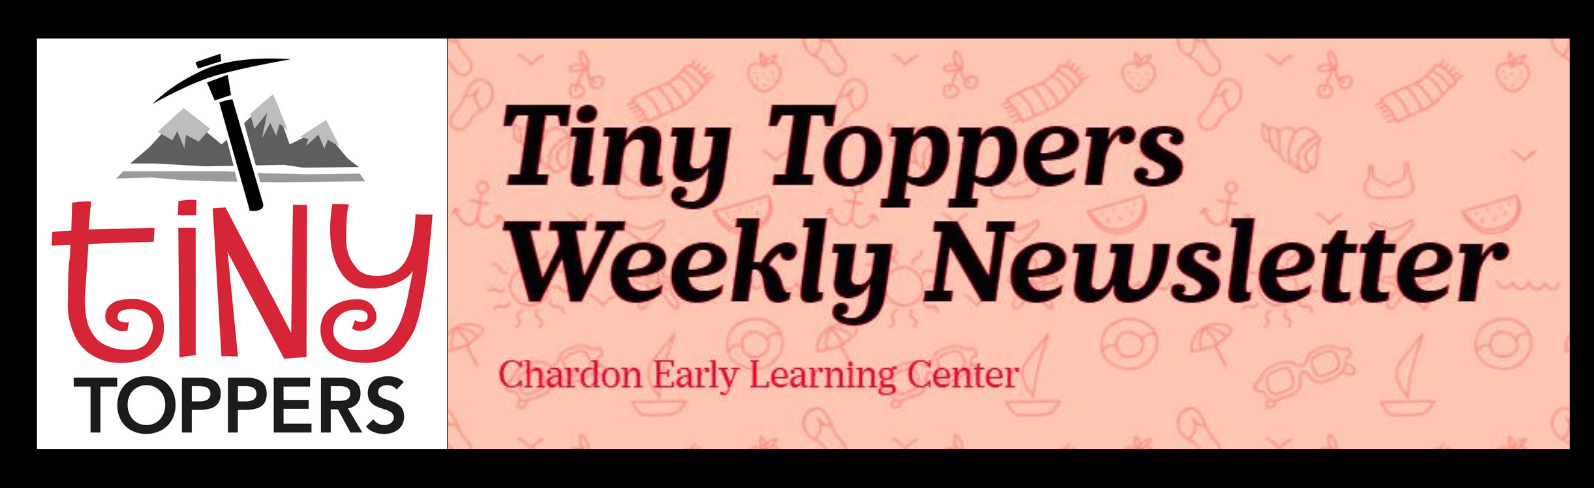 Tiny Toppers mountain axe logo; verbiage:  Tiny Toppers Weekly Newsletter (Chardon Early Learning Center)